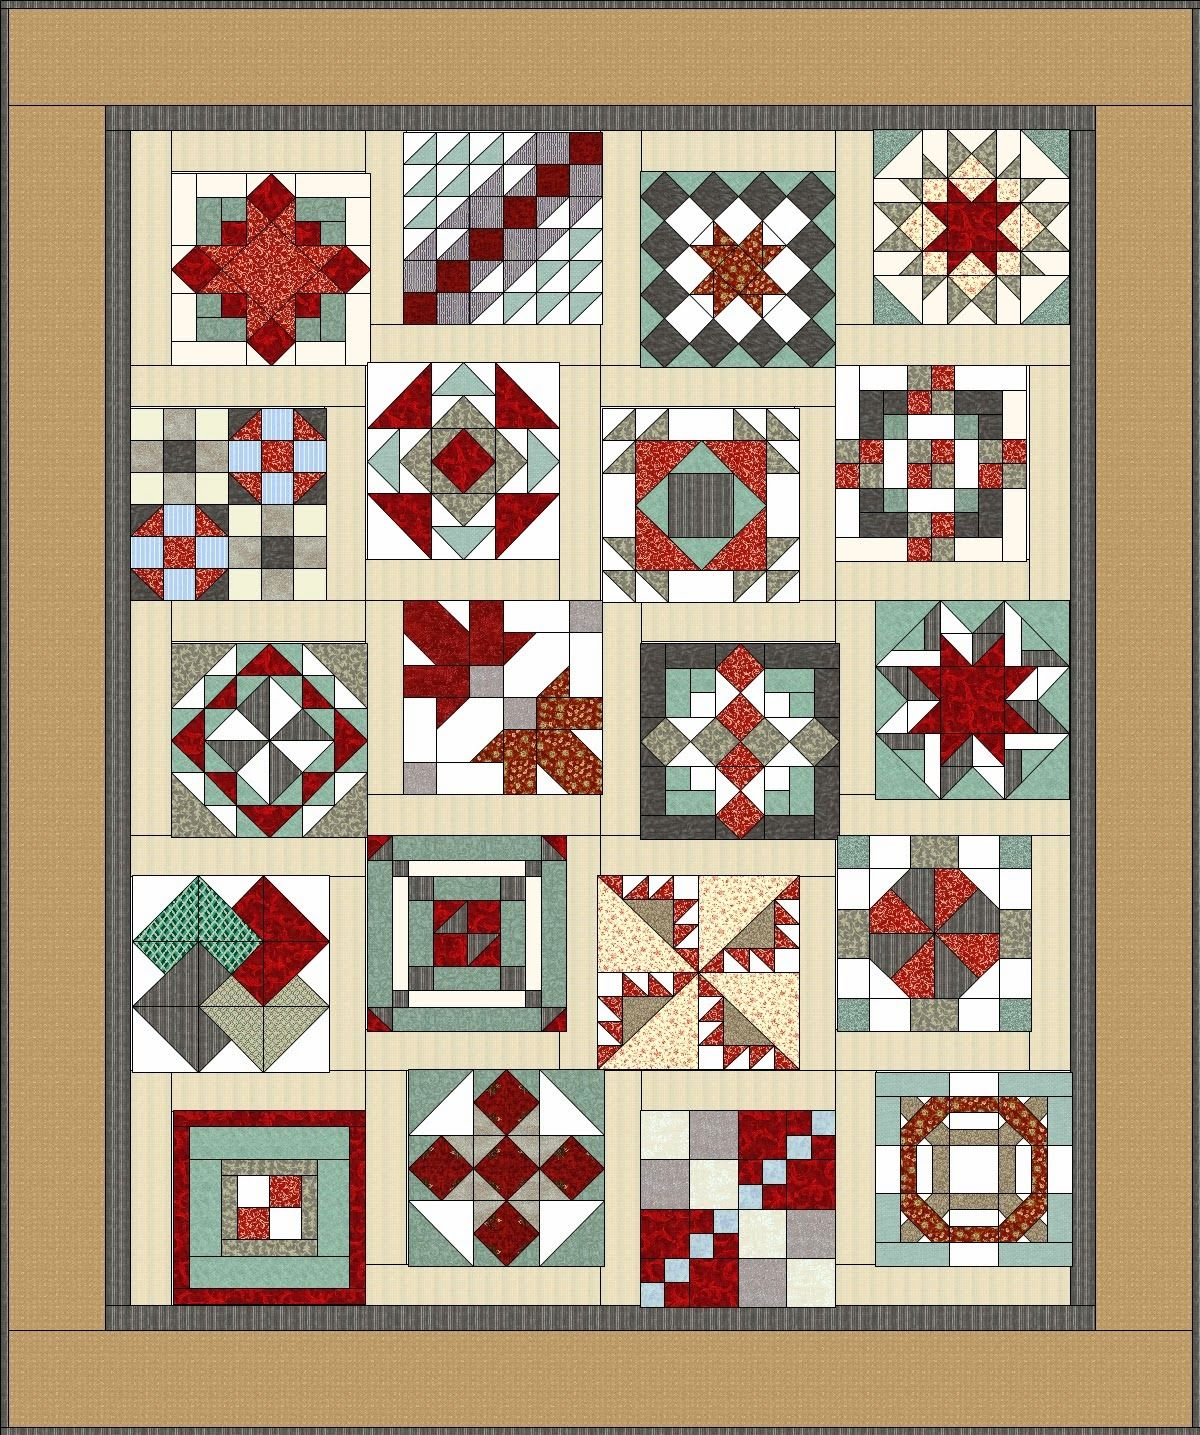 Periwinkle Quilting And Beyond Settings Two Side Sashing Sampler Quilts Barn Quilt Patterns Quilt Block Patterns Free